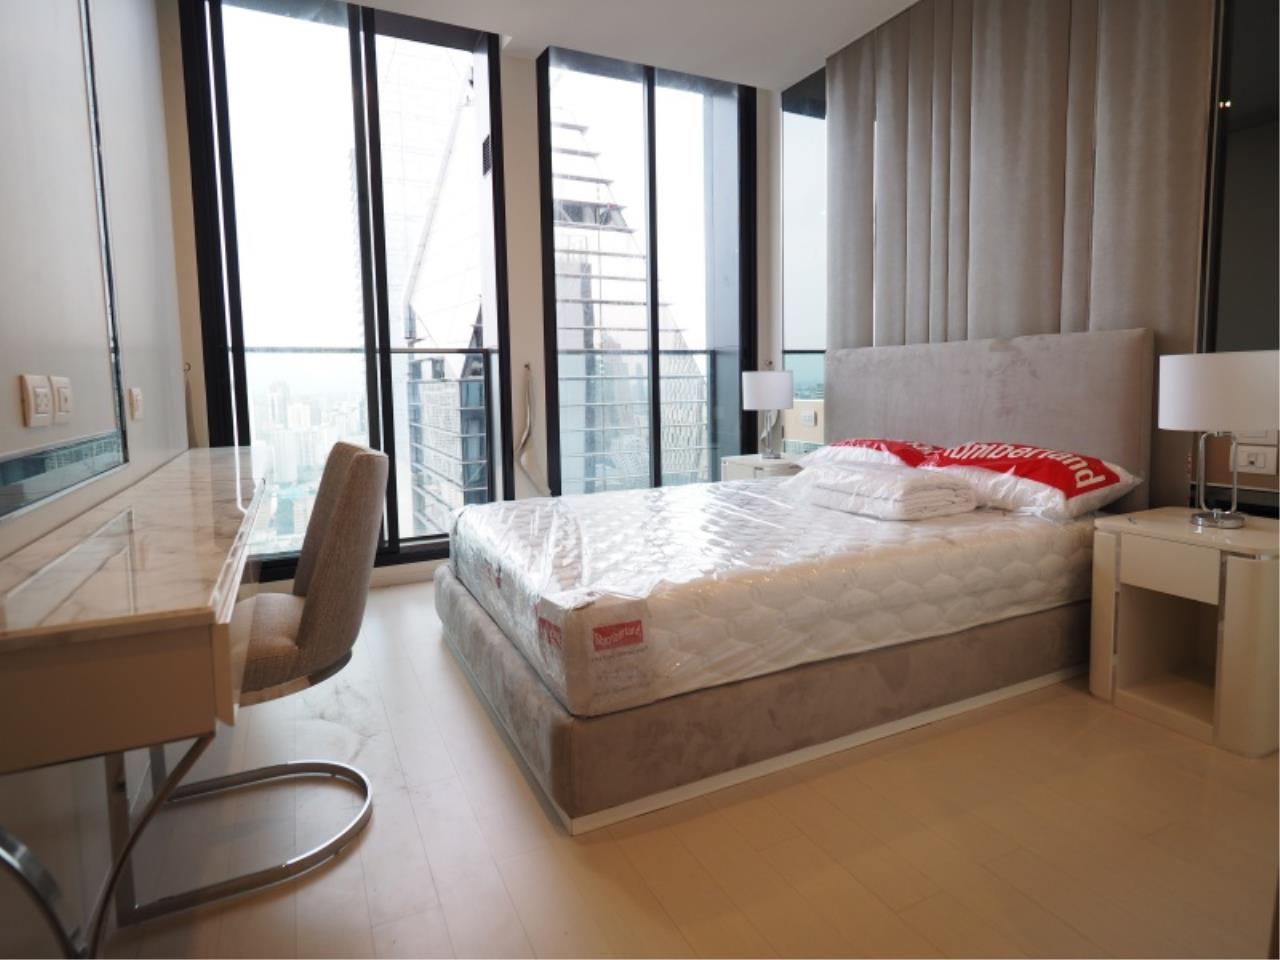 Century21 Skylux Agency's Noble Ploenchit / Condo For Rent / 2 Bedroom / 118 SQM / BTS Phloen Chit / Bangkok 4